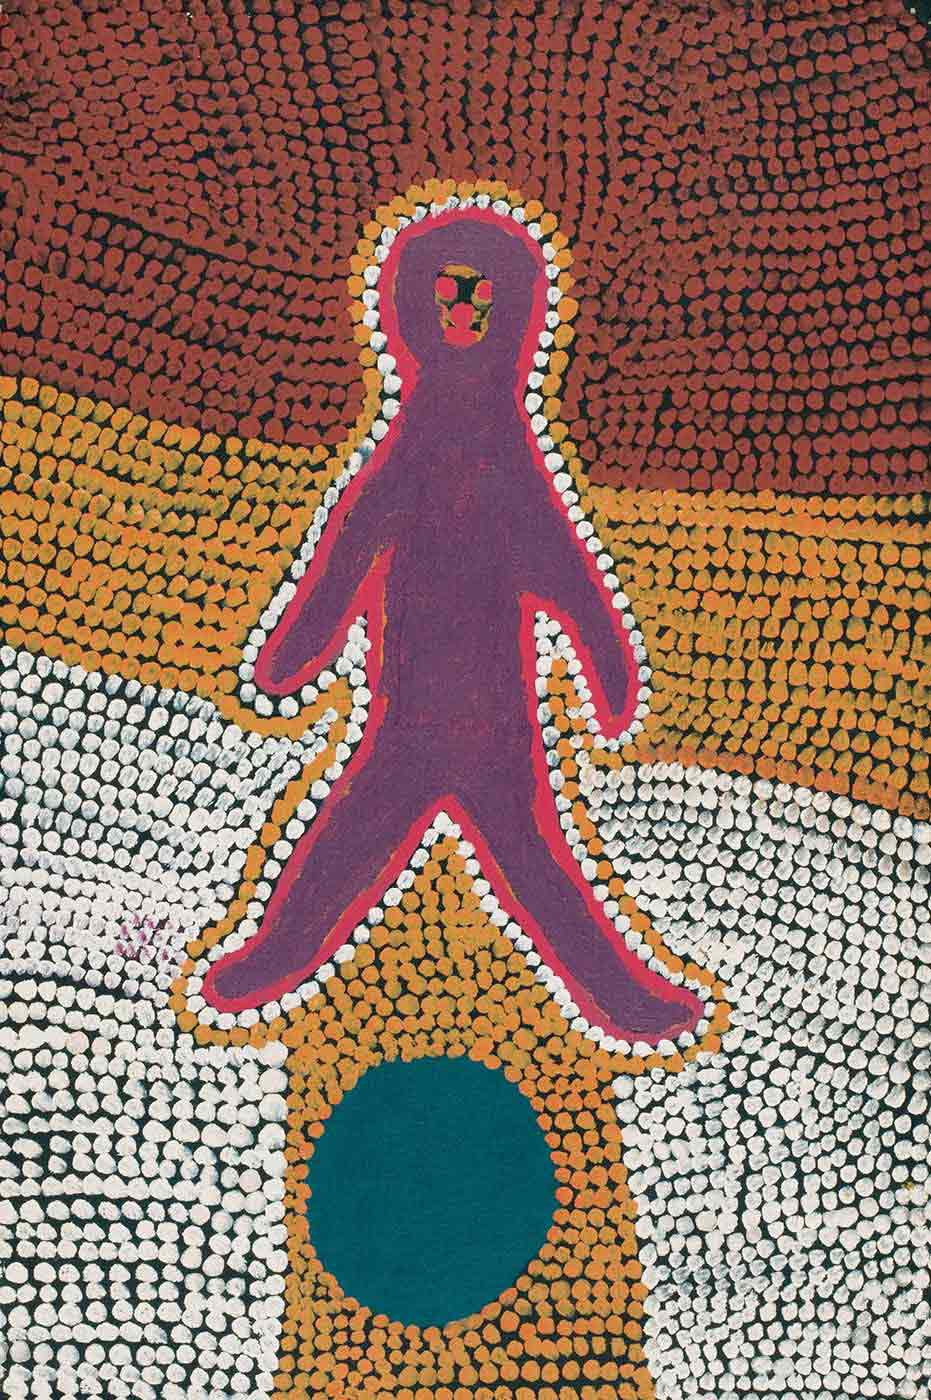 A rectangular painting on brown linen showing the silhouette of a human figure in dark purple outlined with pink then peach and orange dotted lines with pink facial features, above a dark grey-green circle. The background of the painting is black with an overlay of diagonal lines of dots in brown at the top, orange in the middle and down the centre and peach at the bottom. - click to view larger image